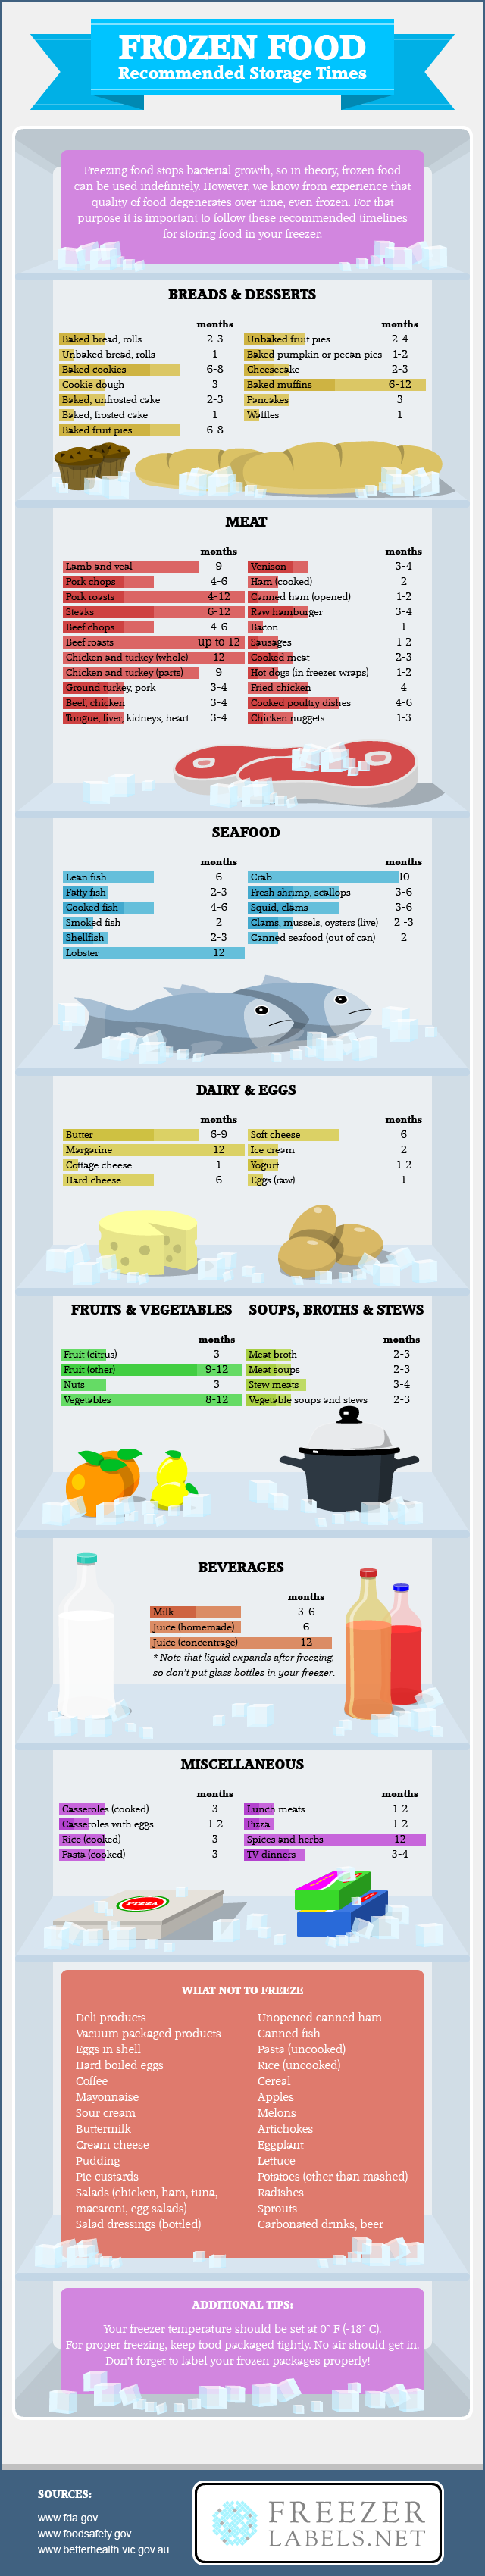 This Infographic Shows How Long Frozen Foods Can Last in Your Freezer